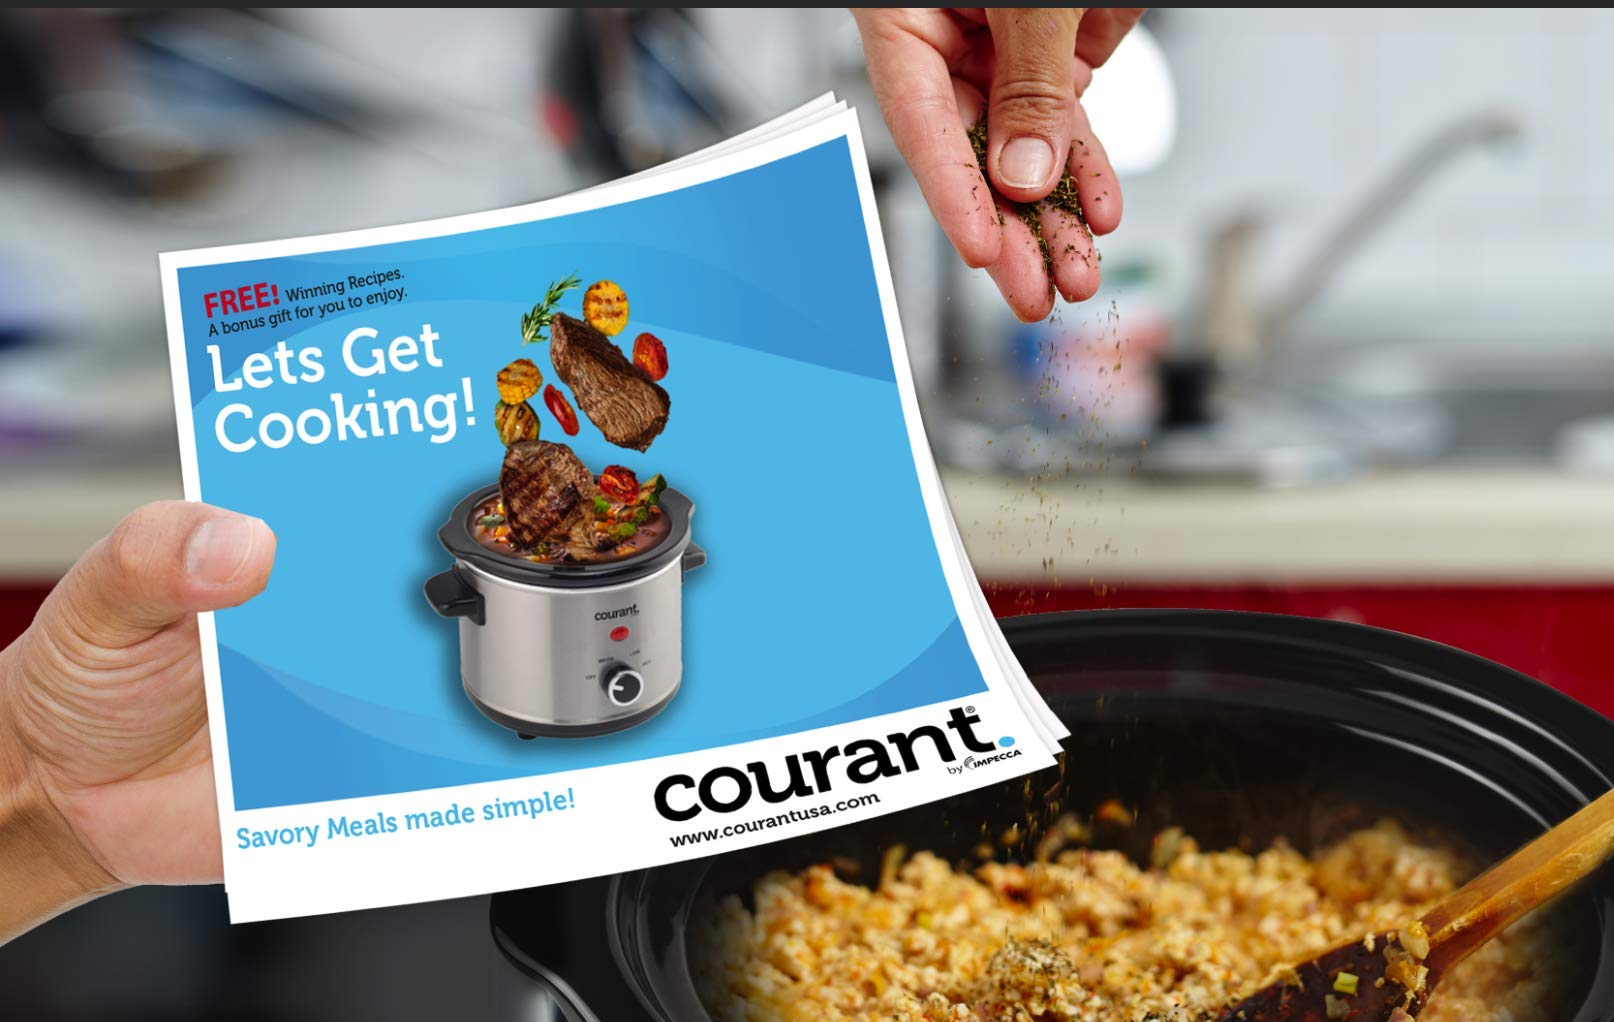 Courant Mini Slow Cooker Crock, with Easy Options 1.5 Quart Dishwasher Safe Pot, Stainless Steel